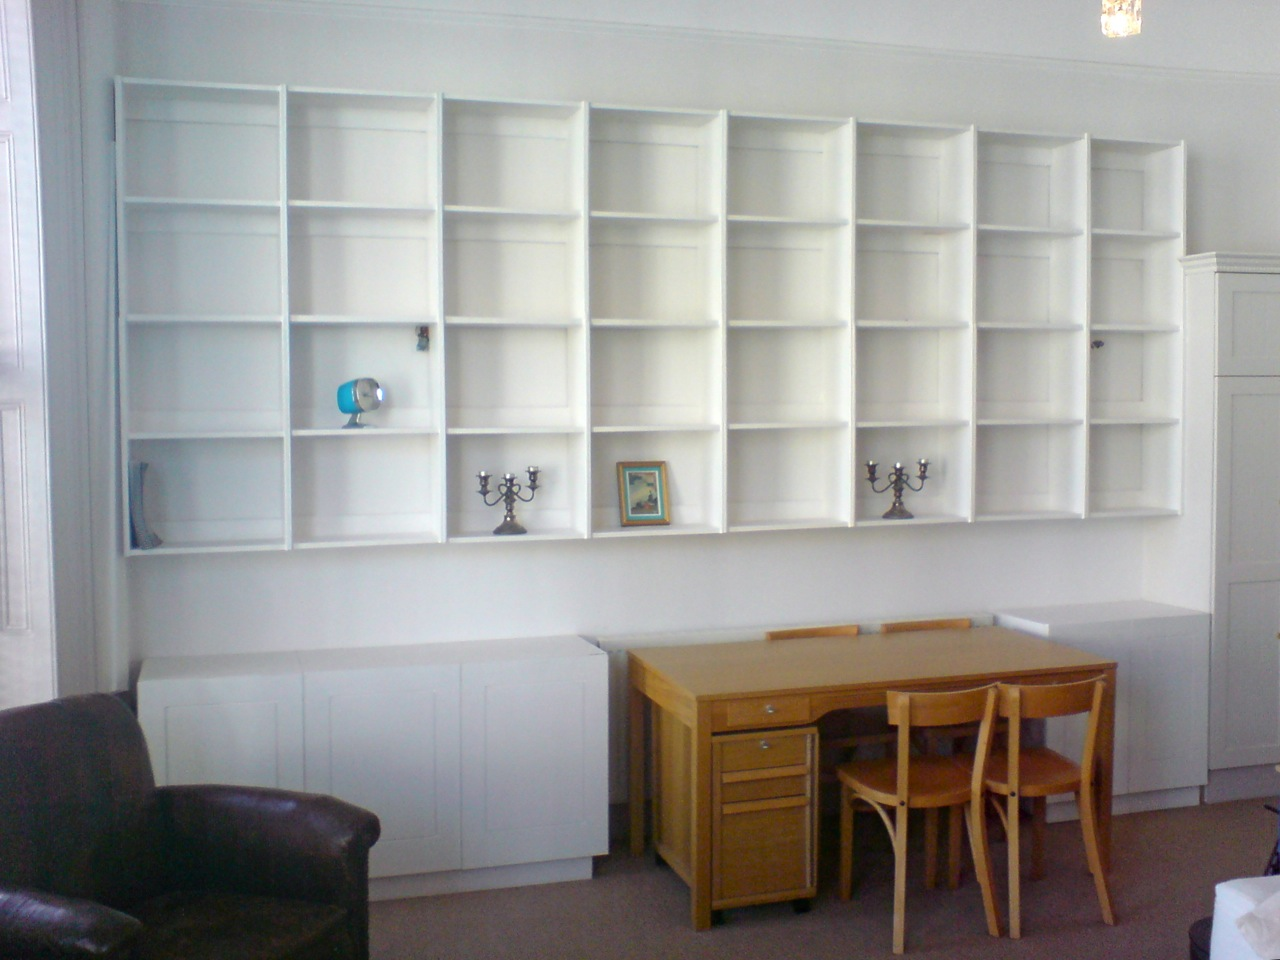 white shelving cabinets richard sothcott brighton carpentry rh brightoncarpentry co uk shelves with filing cabinets Country Cabinets and Shelves